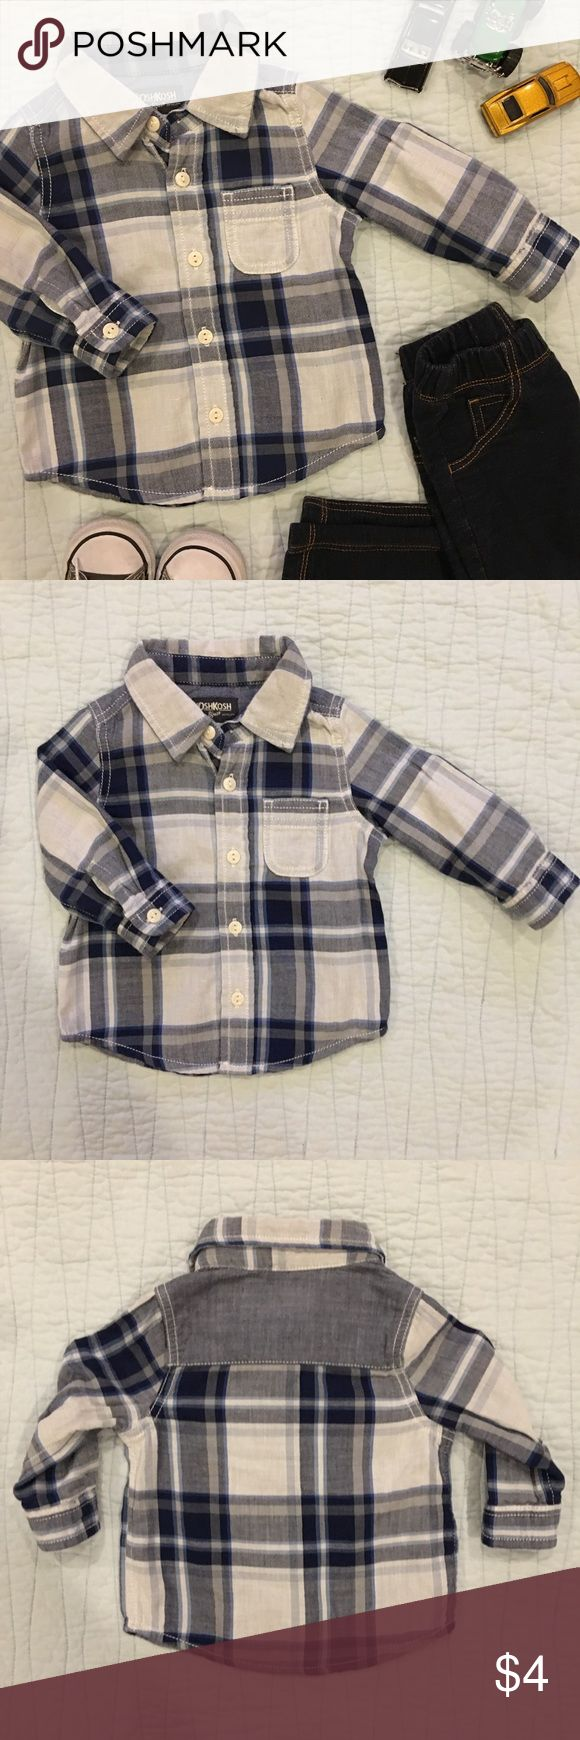 💖 OshKosh B'Gosh Plaid Toddler Button Down 🌟TWO AVAILABLE🌟 Put your handsome guy in this blue plaid button down and pair with jeans for a casual play date, or khakis for a nicer event. Great condition! 😍💙  👔Materials 100% Cotton  📏Size 12 Months  🌟Bundle 2 or more items and save 15%!  📸 Follow me on Instagram @cubbycreekboutique Osh Kosh Shirts & Tops Button Down Shirts